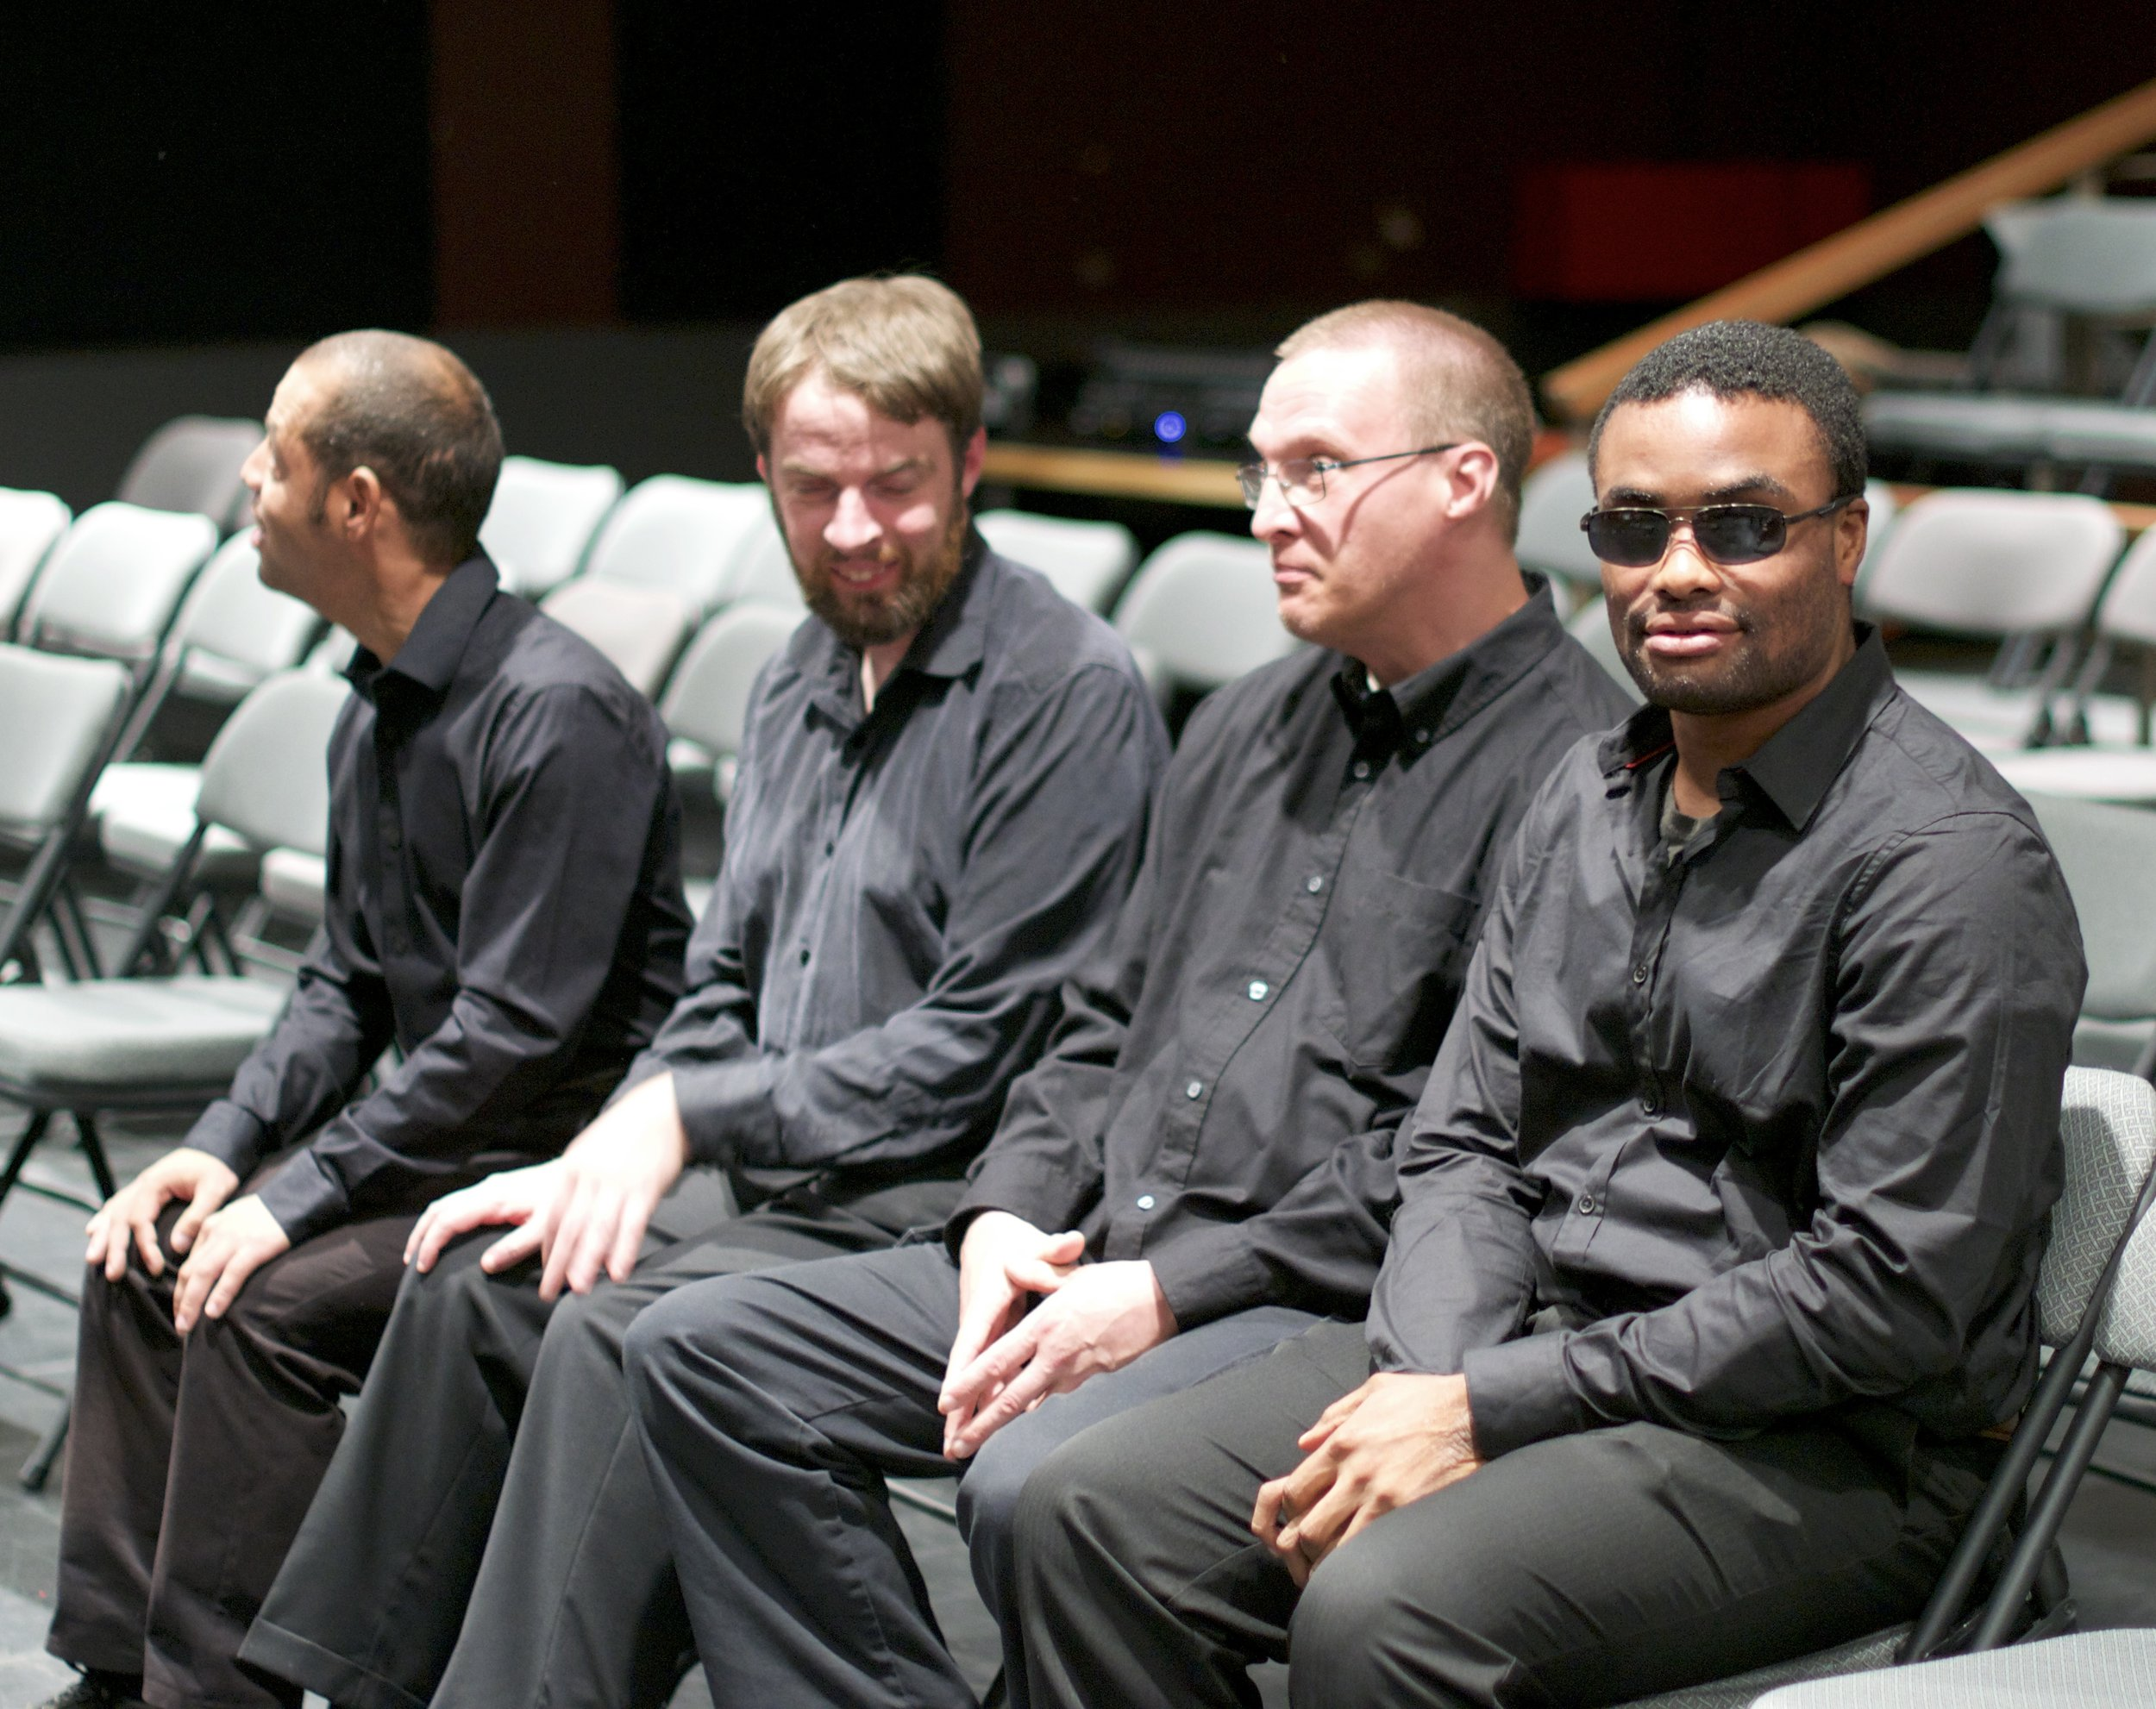 Four men sitting in folding chairs, wearing all black